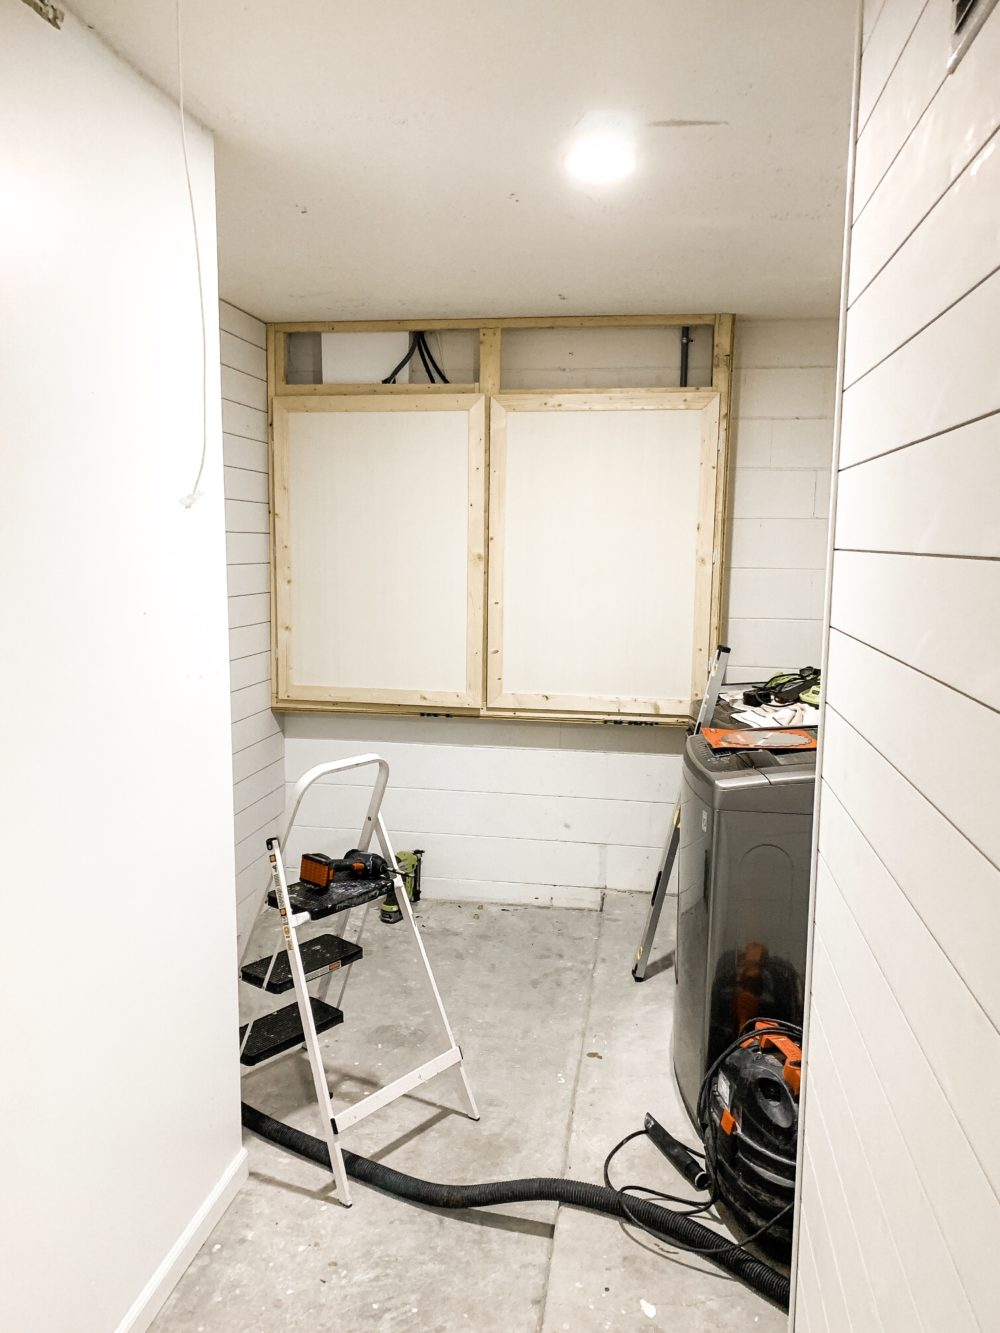 DIY for Covering Breaker Boxes: A Faux Cabinet Tutorial by popular Florida DIY blog, Fresh Mommy: image of handmade cabinets covering some utility boxes.